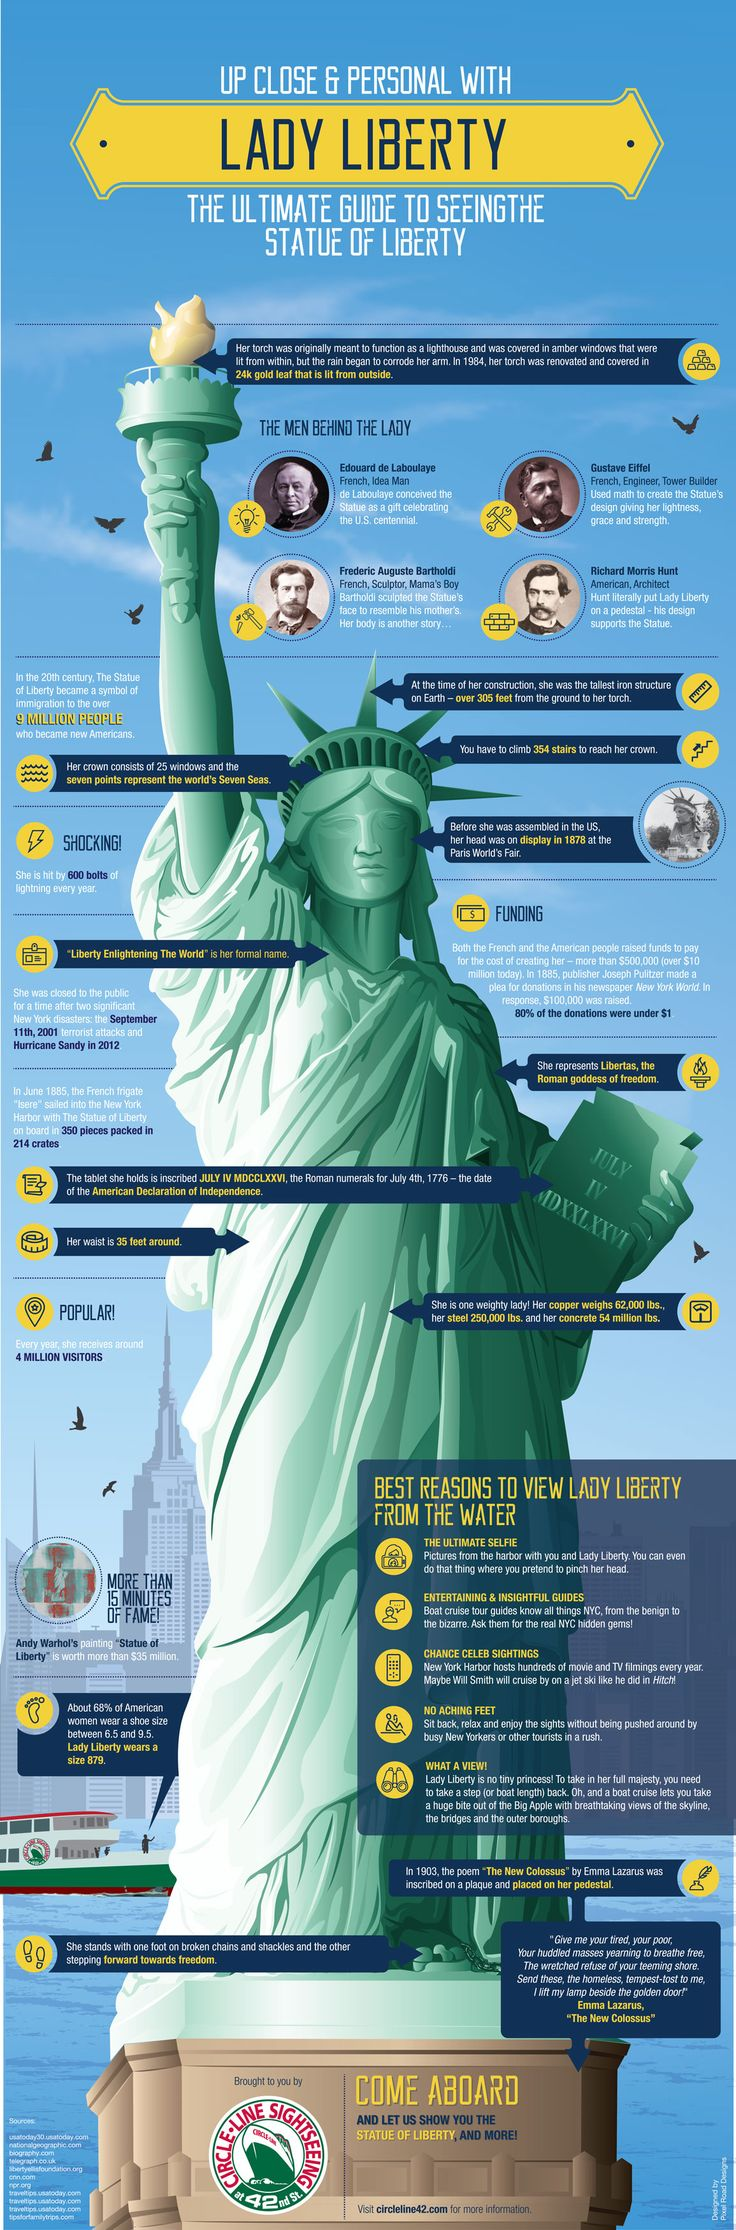 How To See The Statue Of Liberty, A Bit Of History & Other Reasons The Lady Is So Awesome